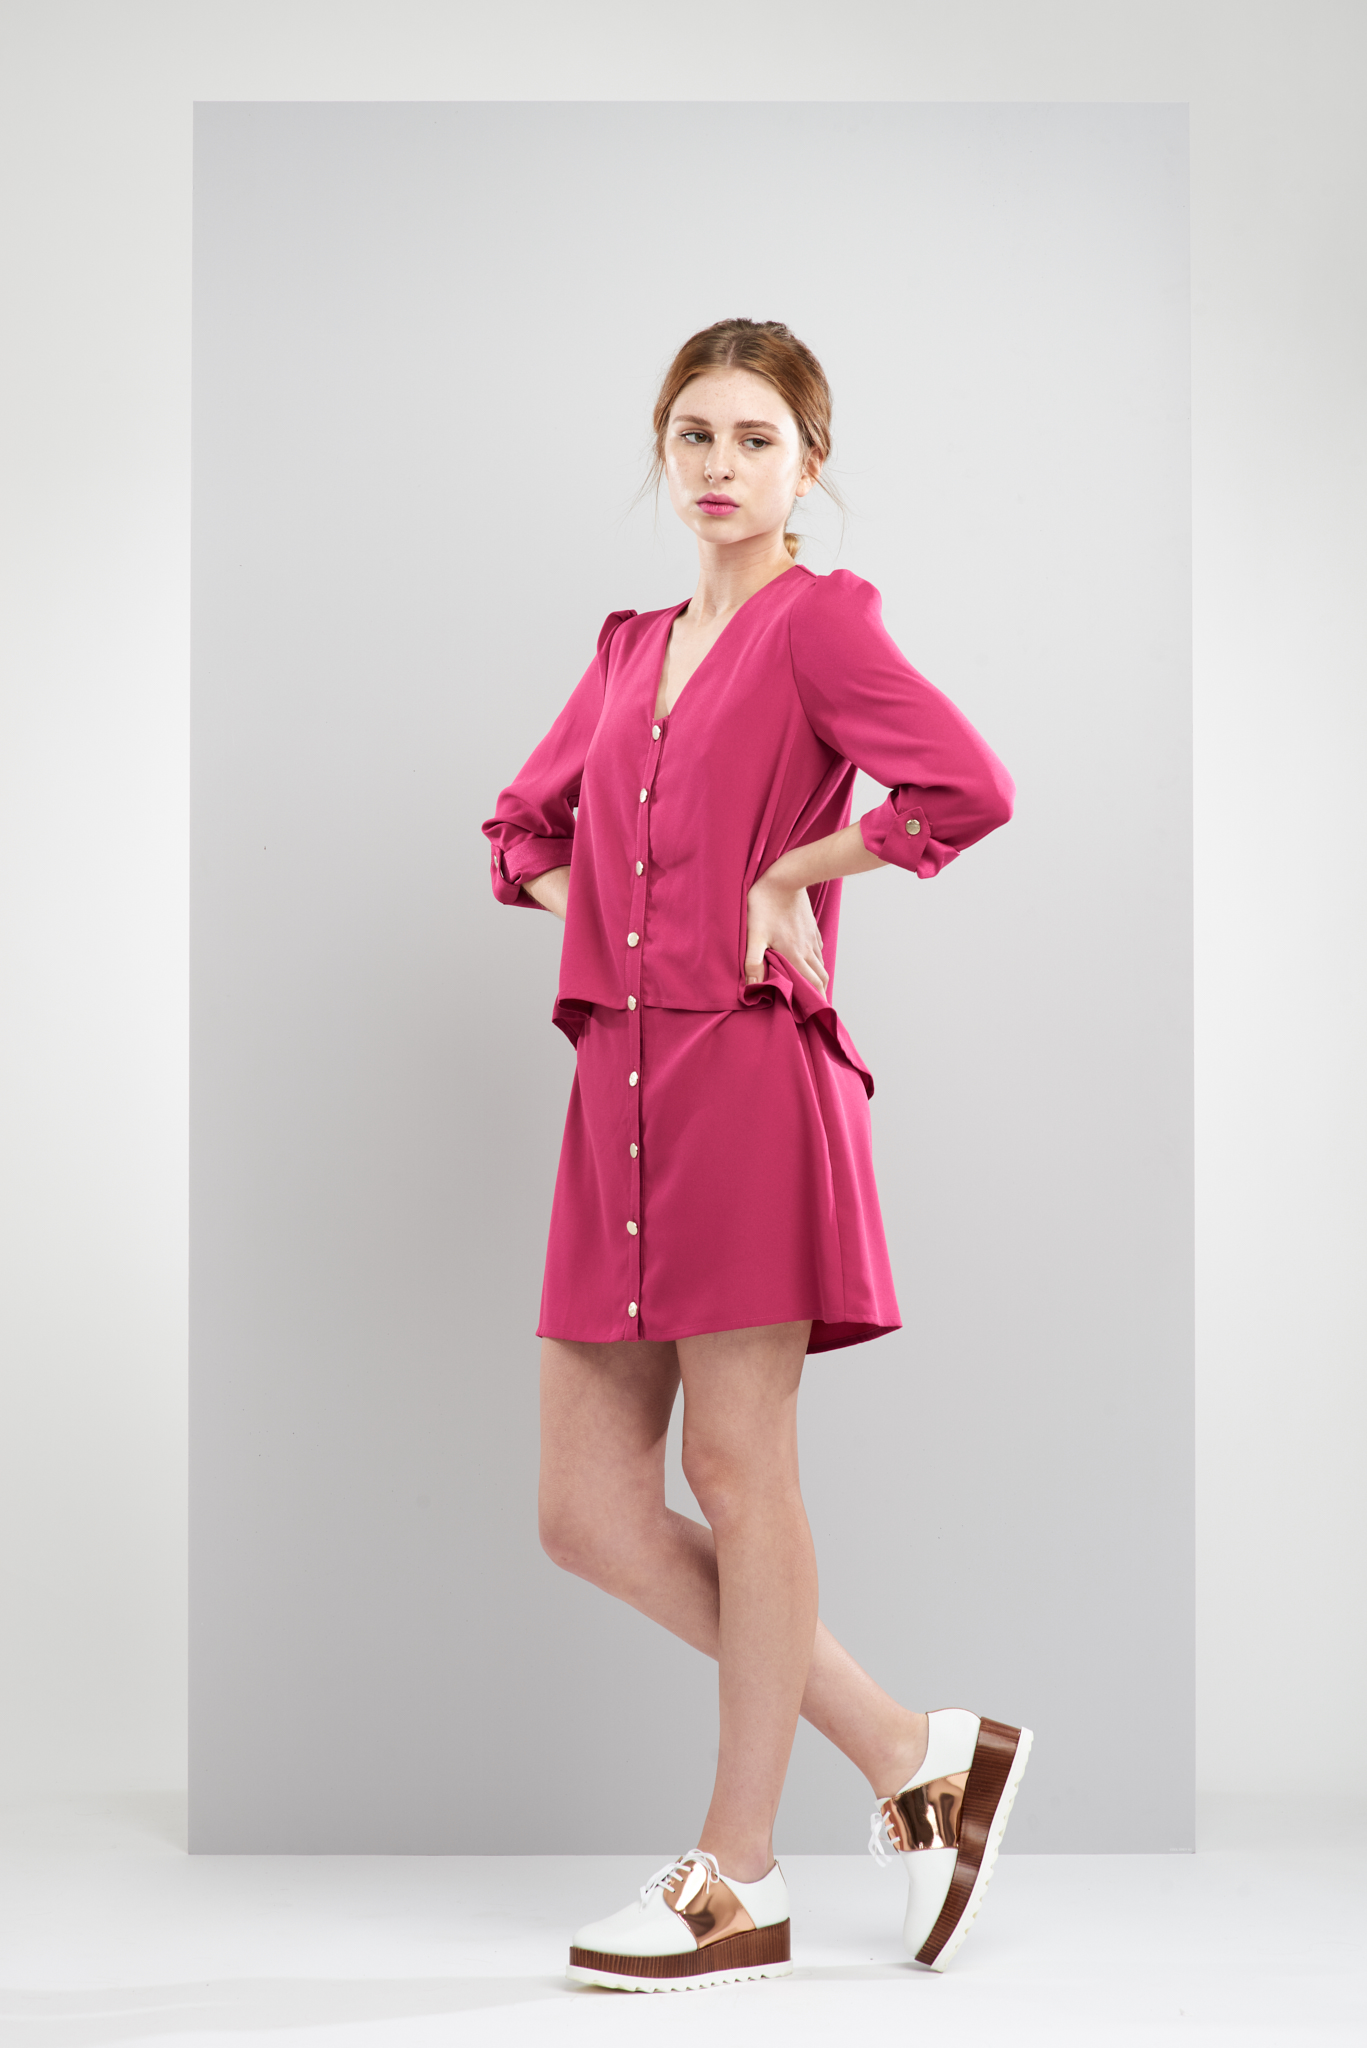 ManleyAW17 - Layla Dress - Magenta €275 LR.jpg